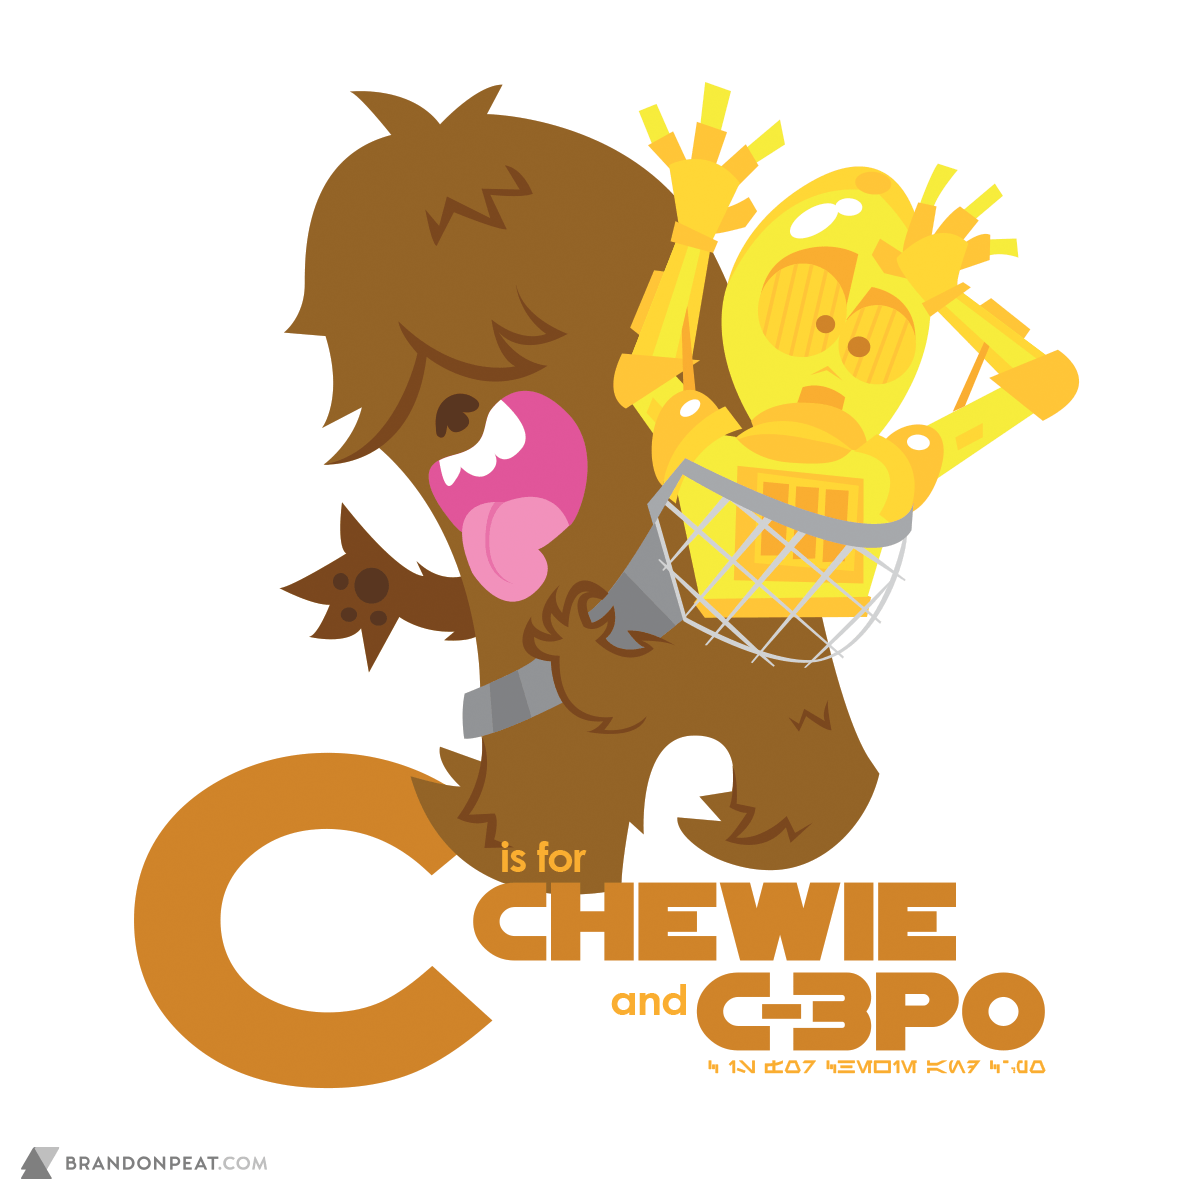 A Is For Ackbar: C Is For Chewie and C-3PO